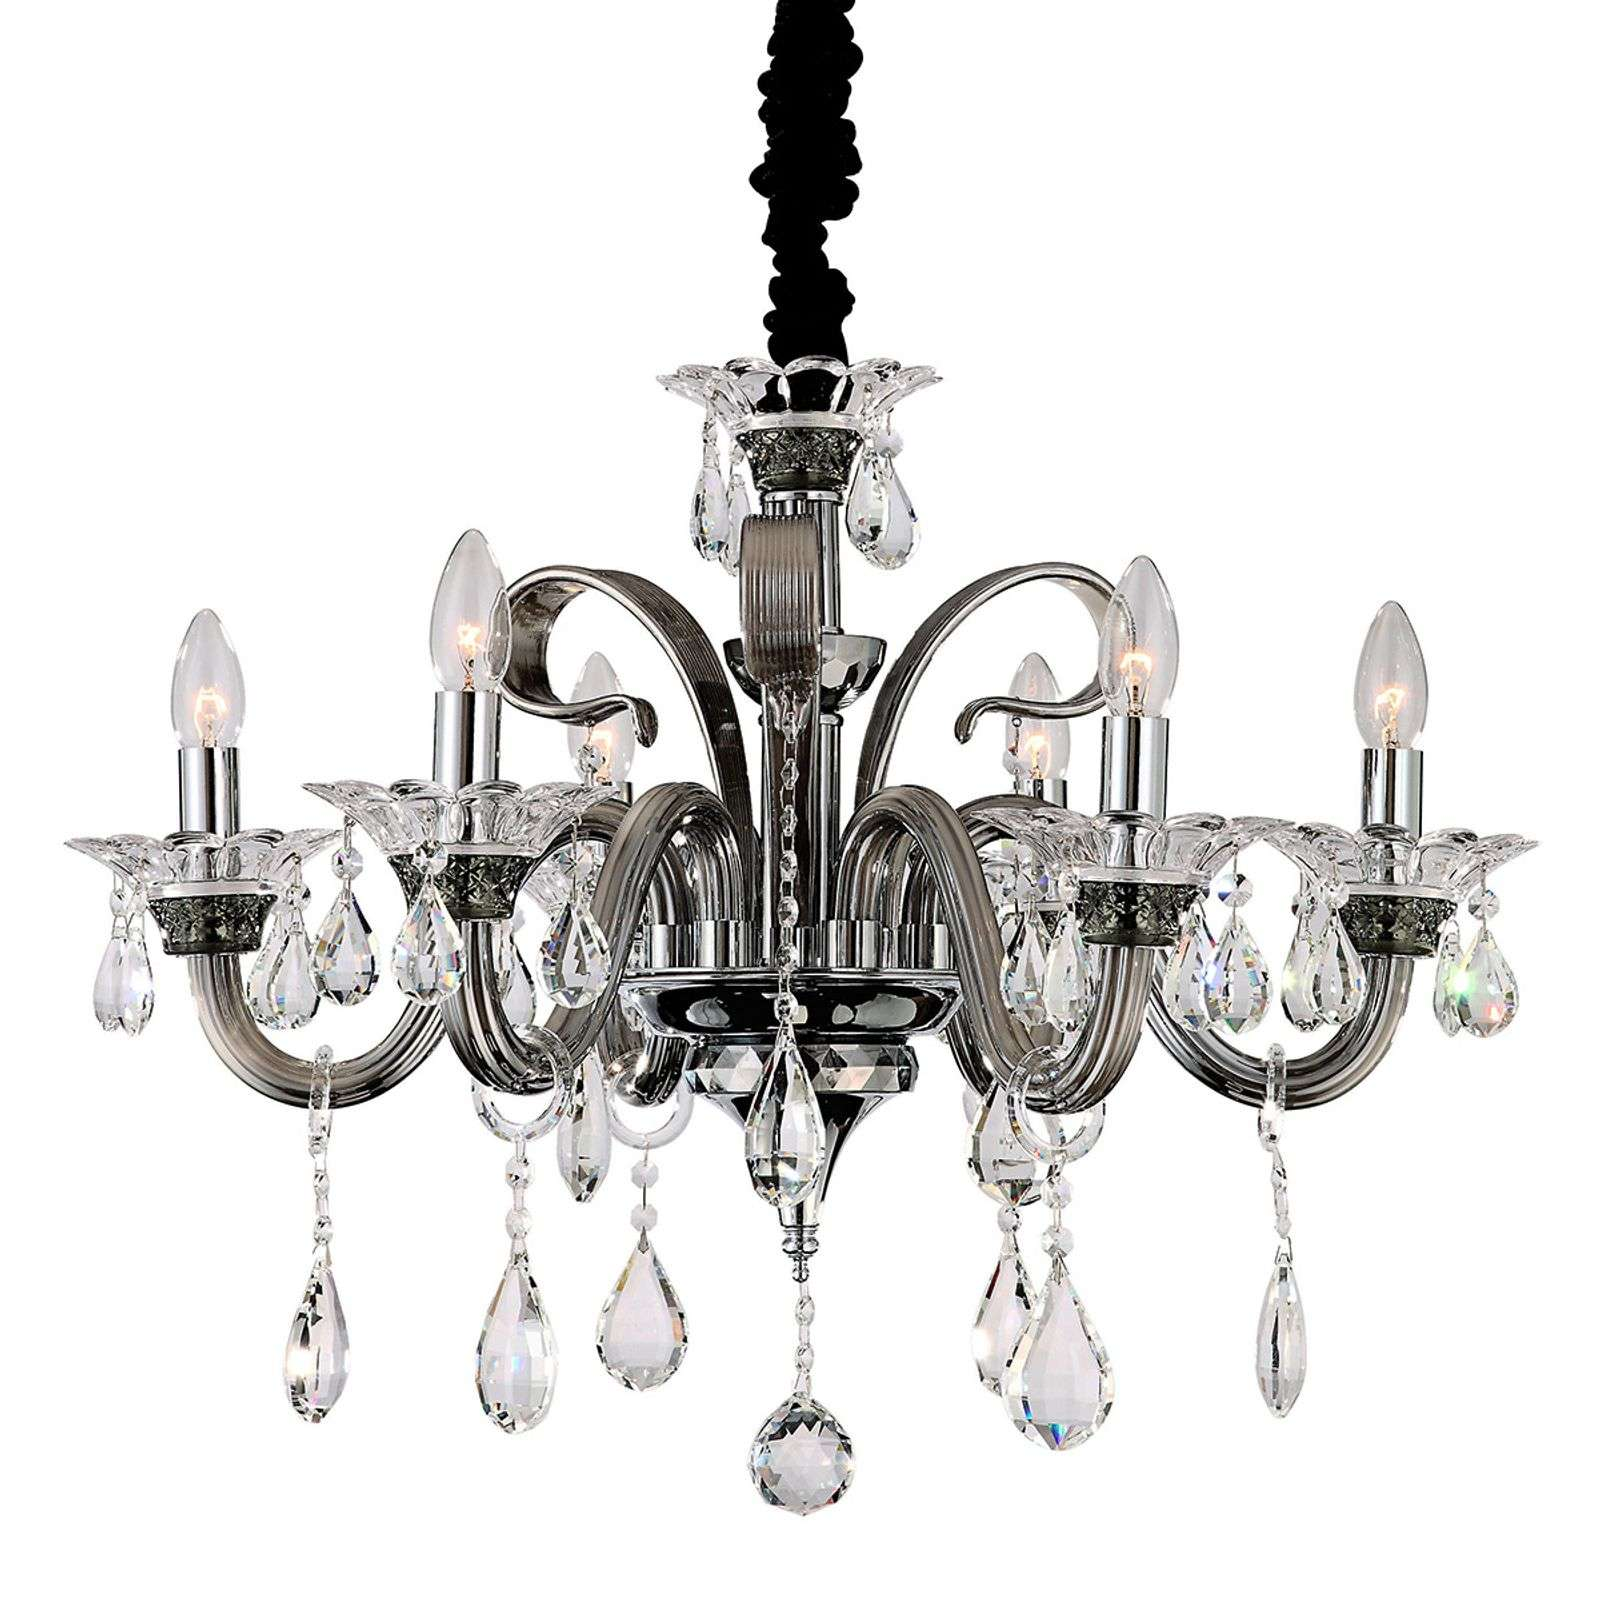 Suspension six lampes Viktor, pendeloques cristal